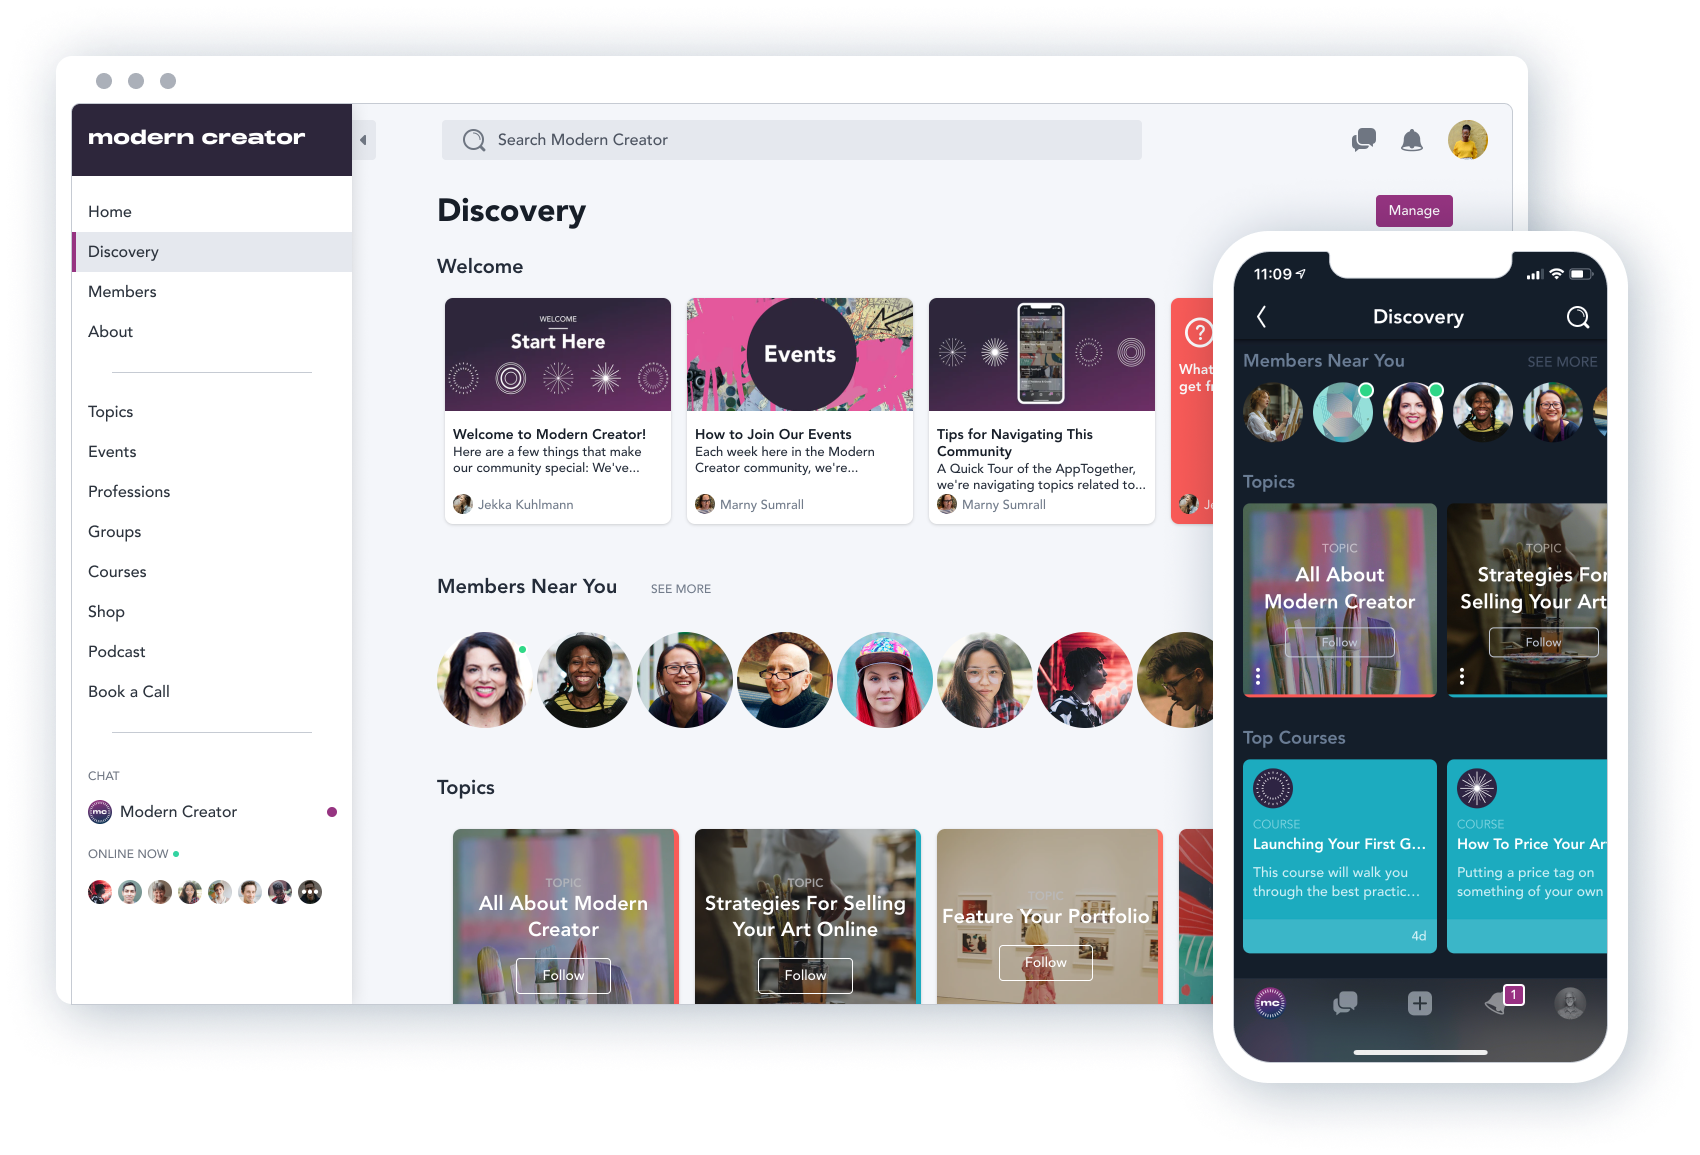 Mighty Networks Software - Content can be organized into featured sections to help members easily find what's most important to them and to enable brands and creators to promote the content, events, and courses they care about.